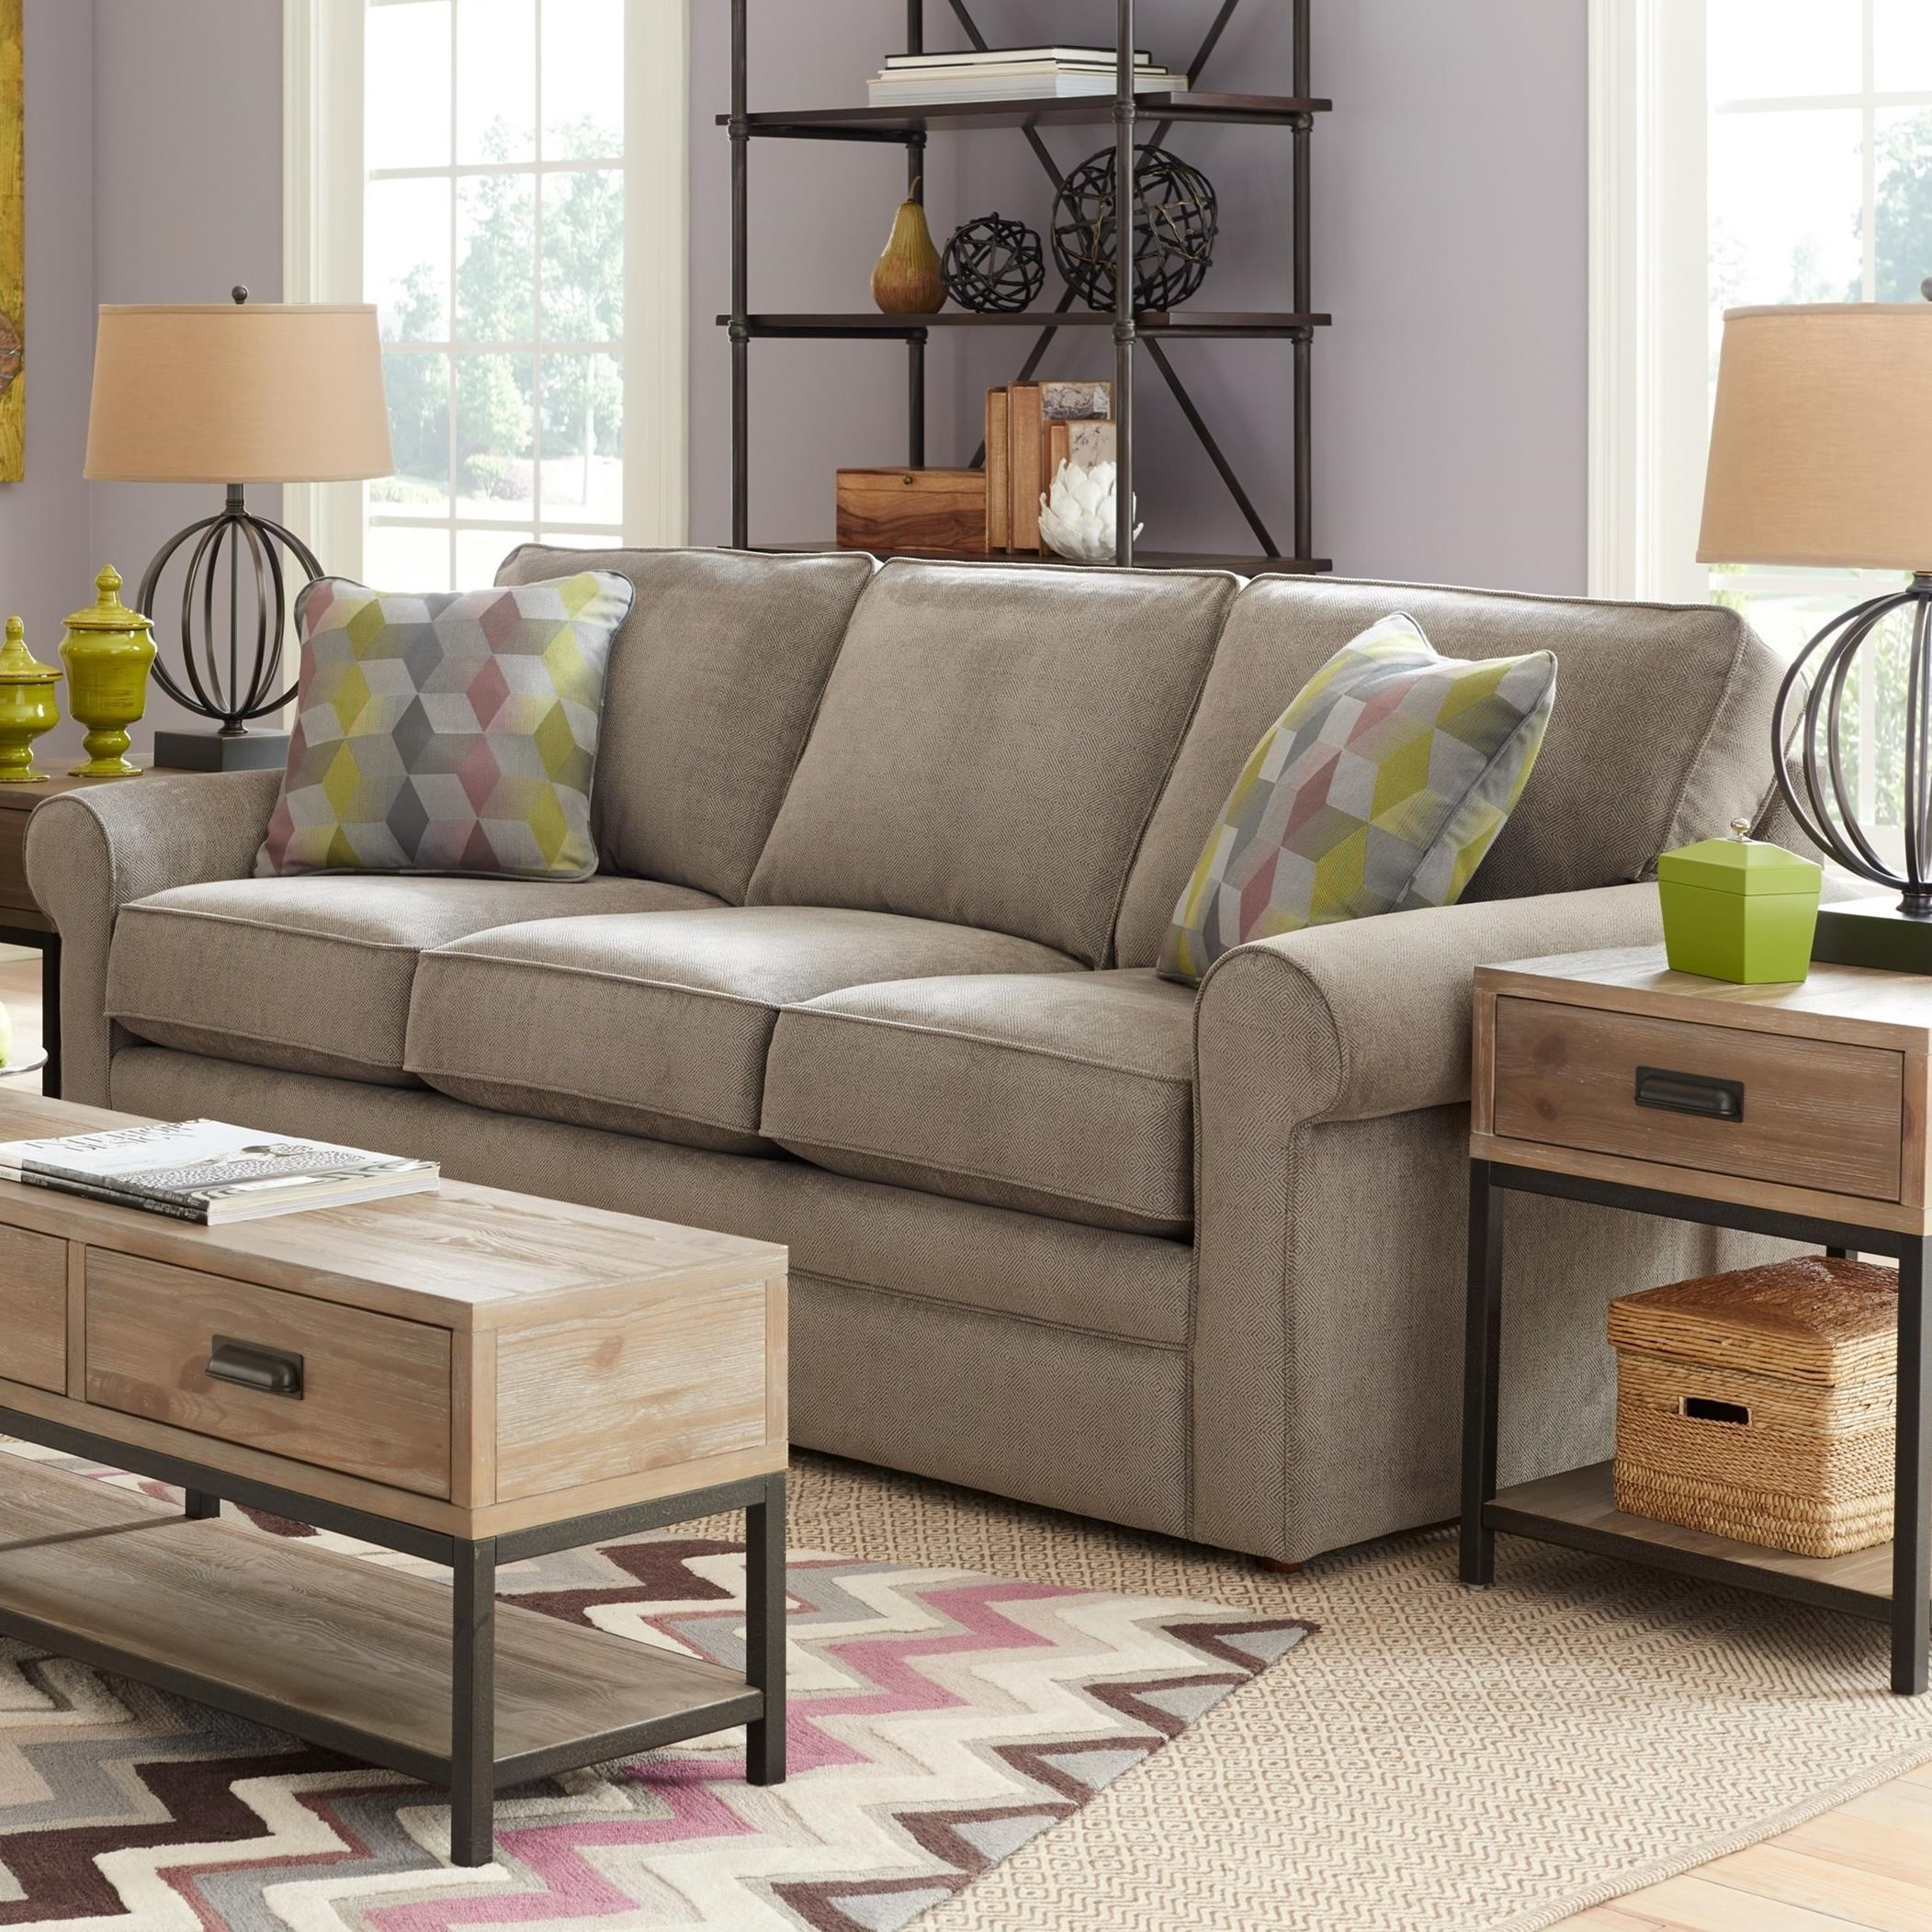 La-Z-Boy Collins Sofa with Rolled Arms - Novello Home Furnishings - Sofas  sc 1 st  Novello Furniture : lazy boy collins sectional price - Sectionals, Sofas & Couches